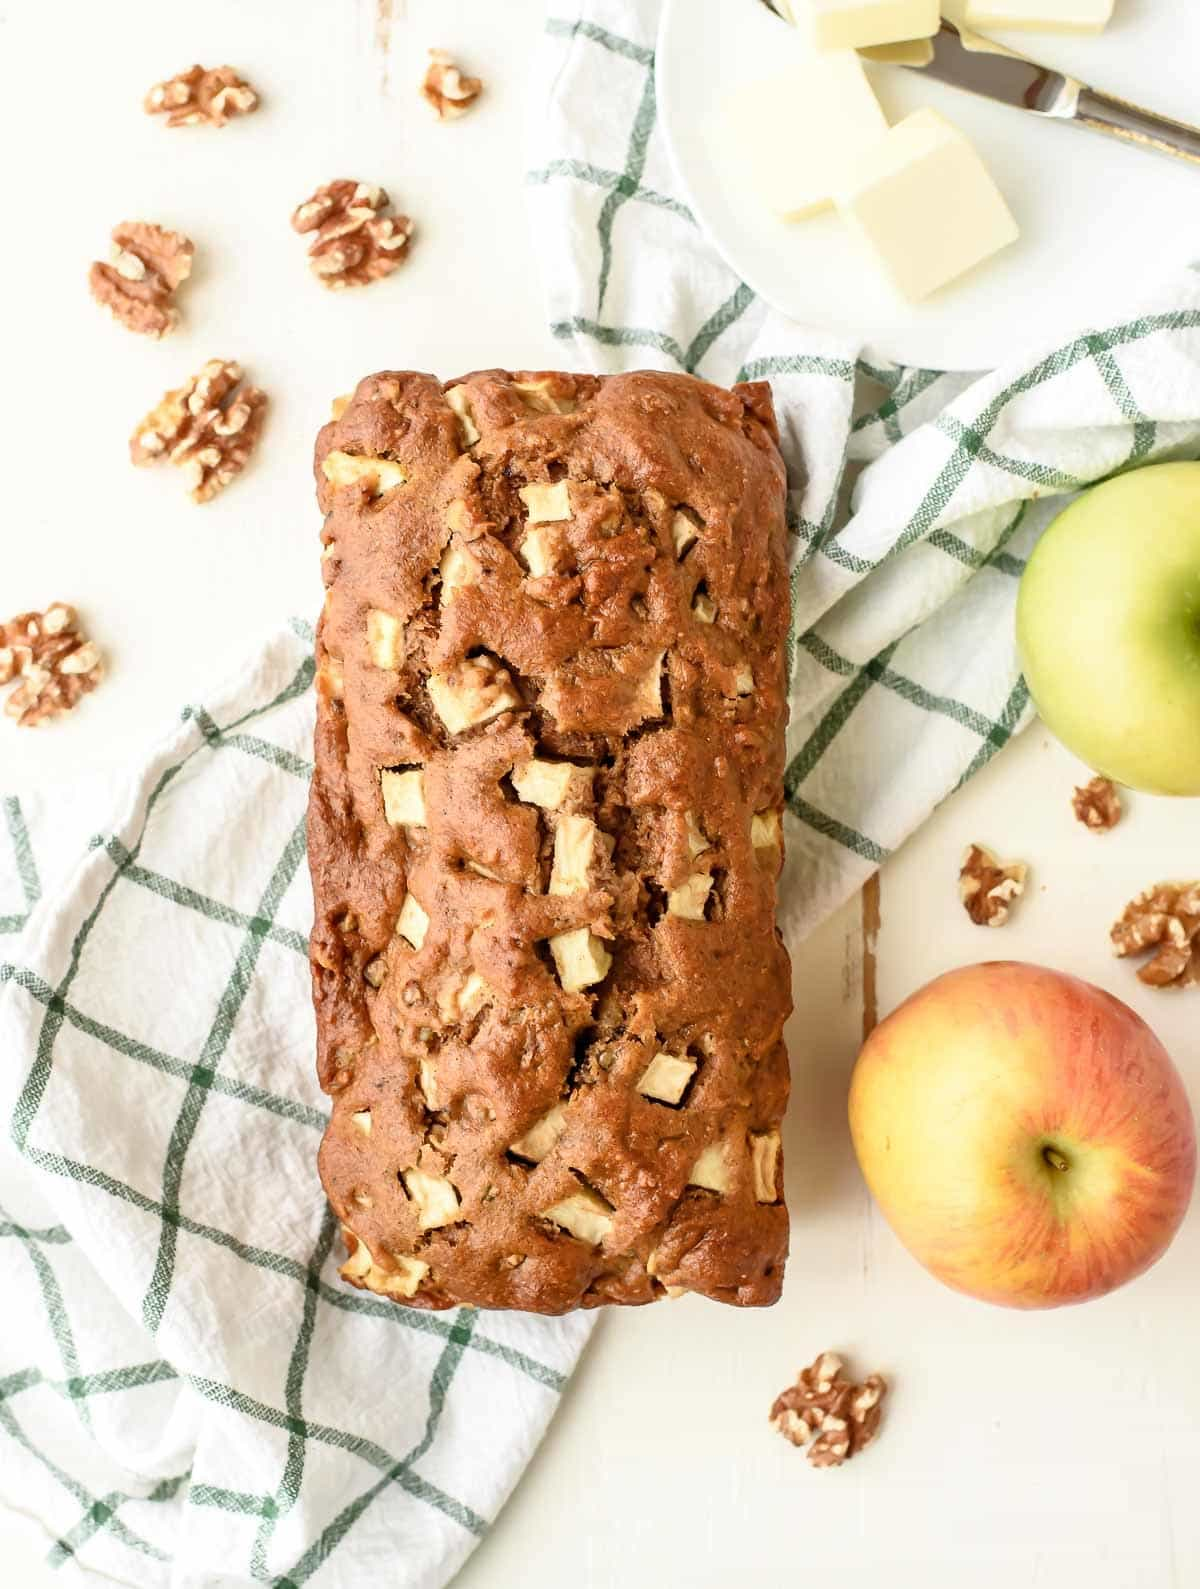 The BEST Apple Cinnamon Bread. So easy you don't even need a mixer! @wellplated